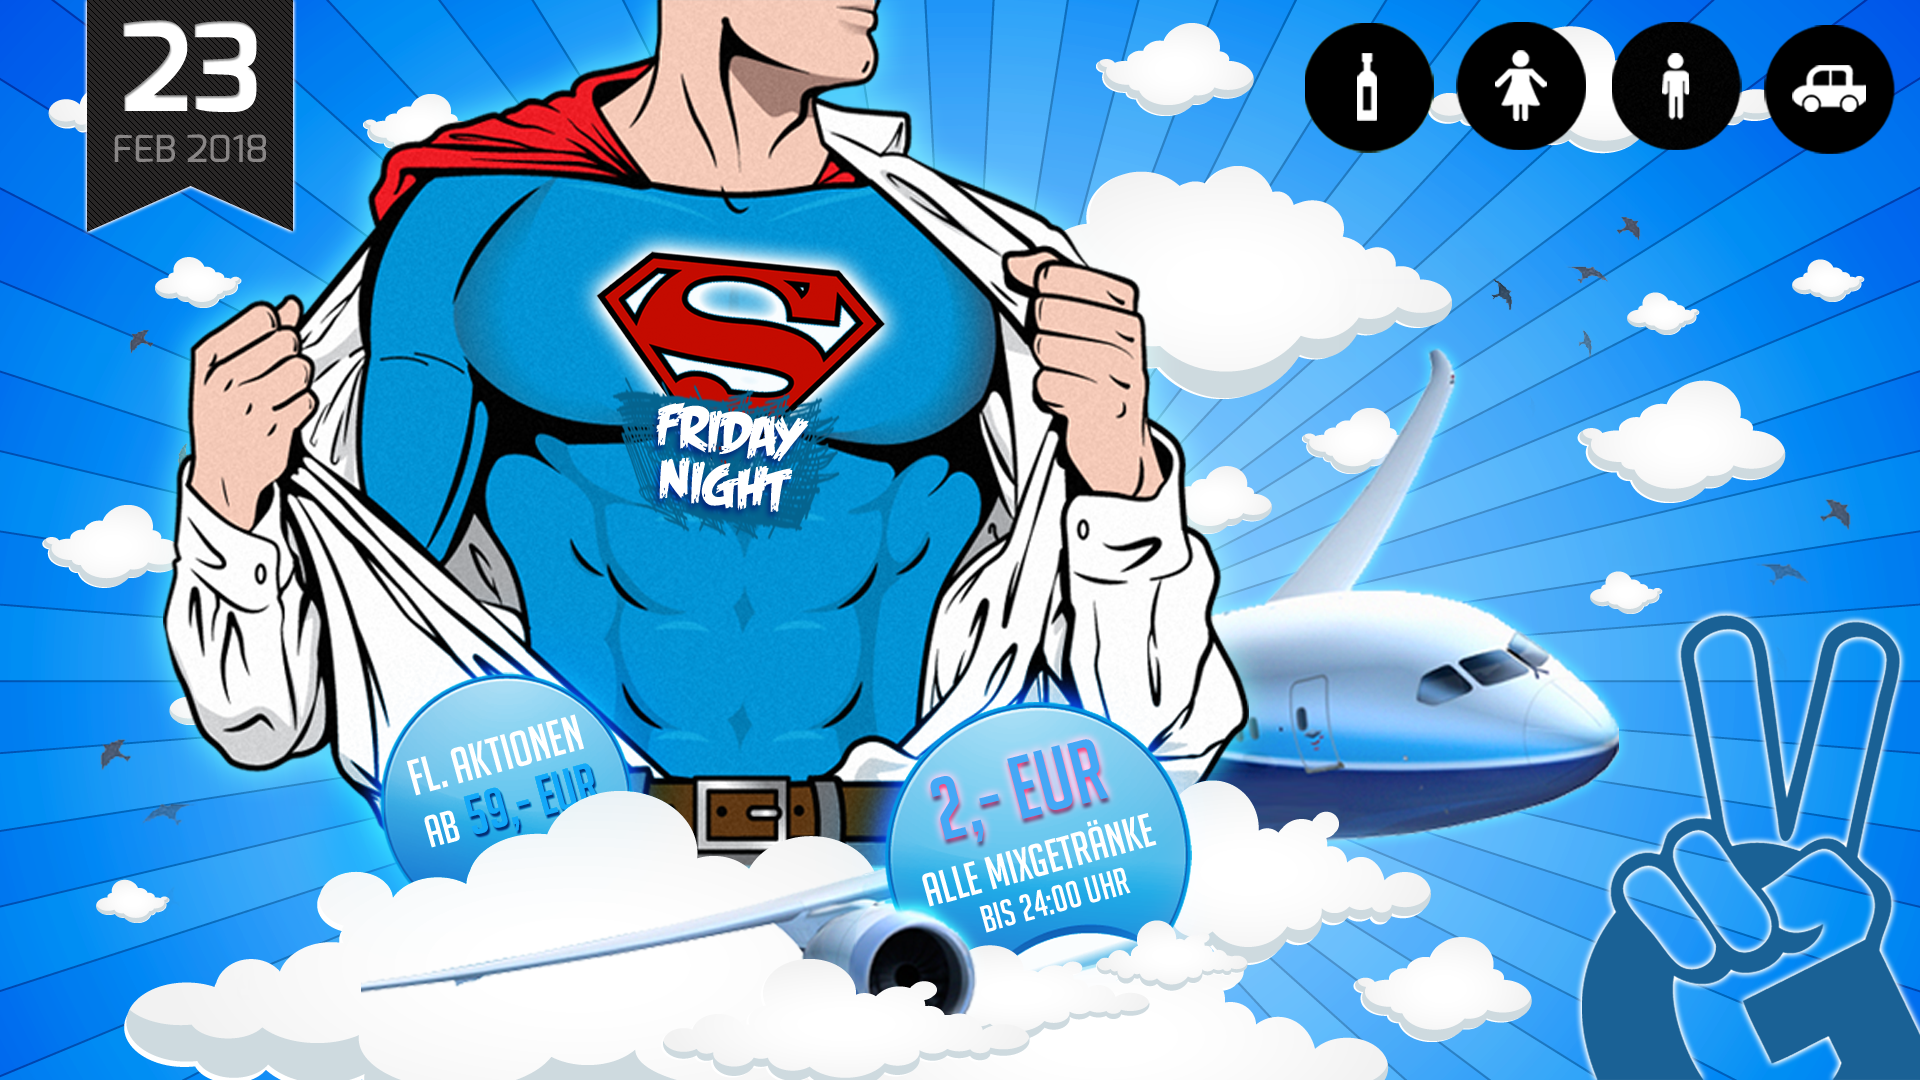 EURO PARTY | Super Friday Night